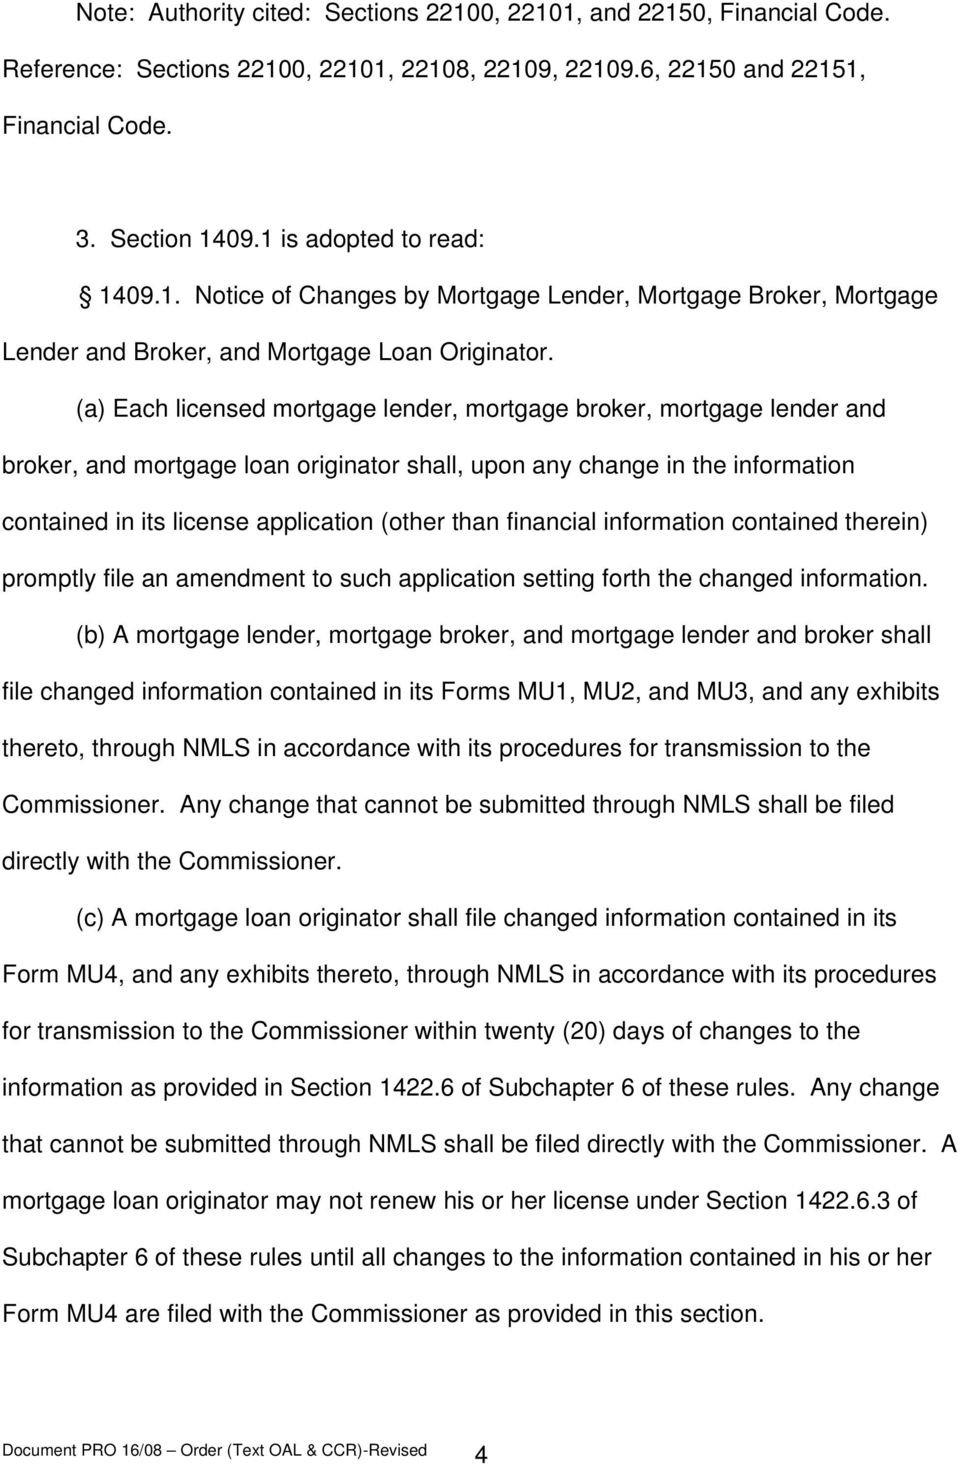 (a) Each licensed mortgage lender, mortgage broker, mortgage lender and broker, and mortgage loan originator shall, upon any change in the information contained in its license application (other than